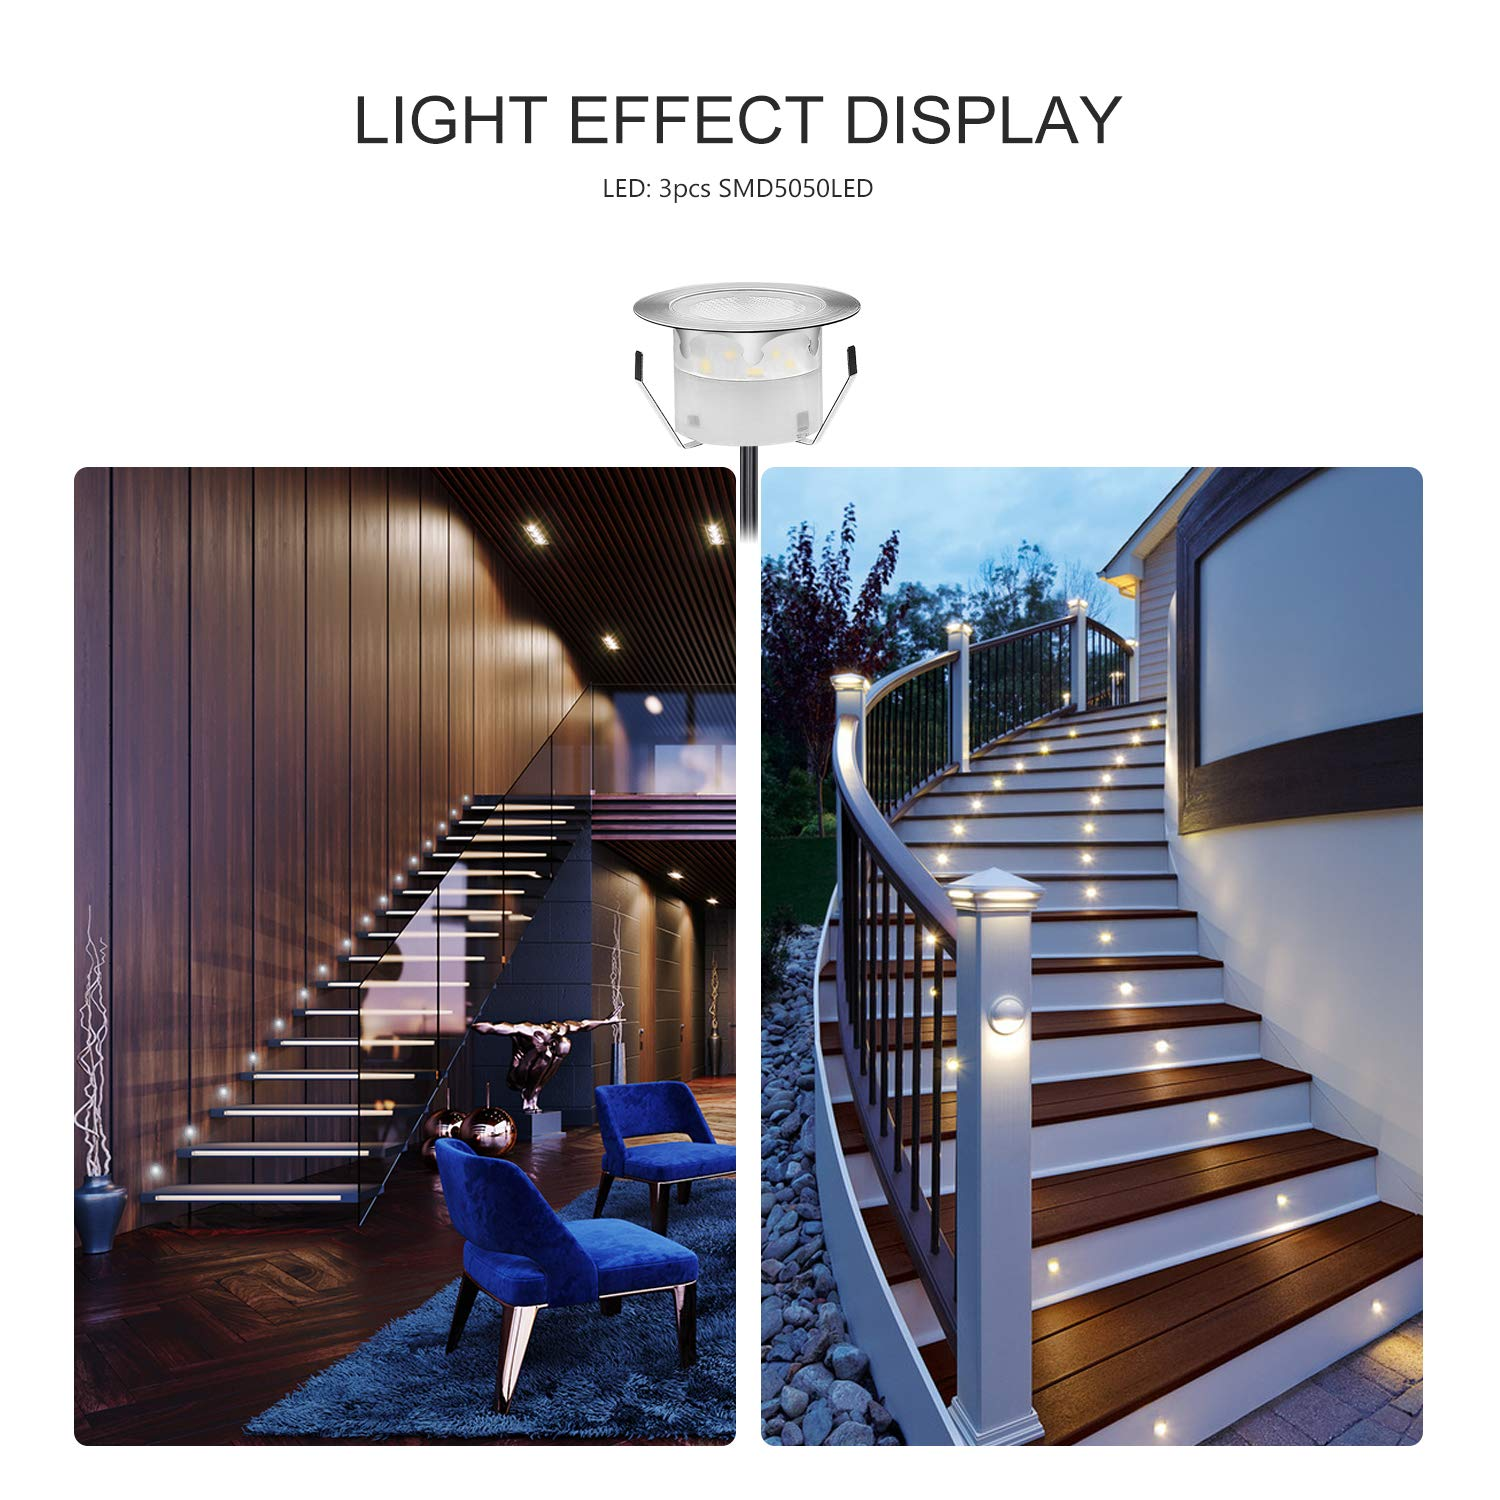 QACA Pack of 10 Low Voltage LED Deck Light Kit Waterproof Outdoor Step Stairs Garden Yard Patio Landscape Decor Lighting Blue Lamp